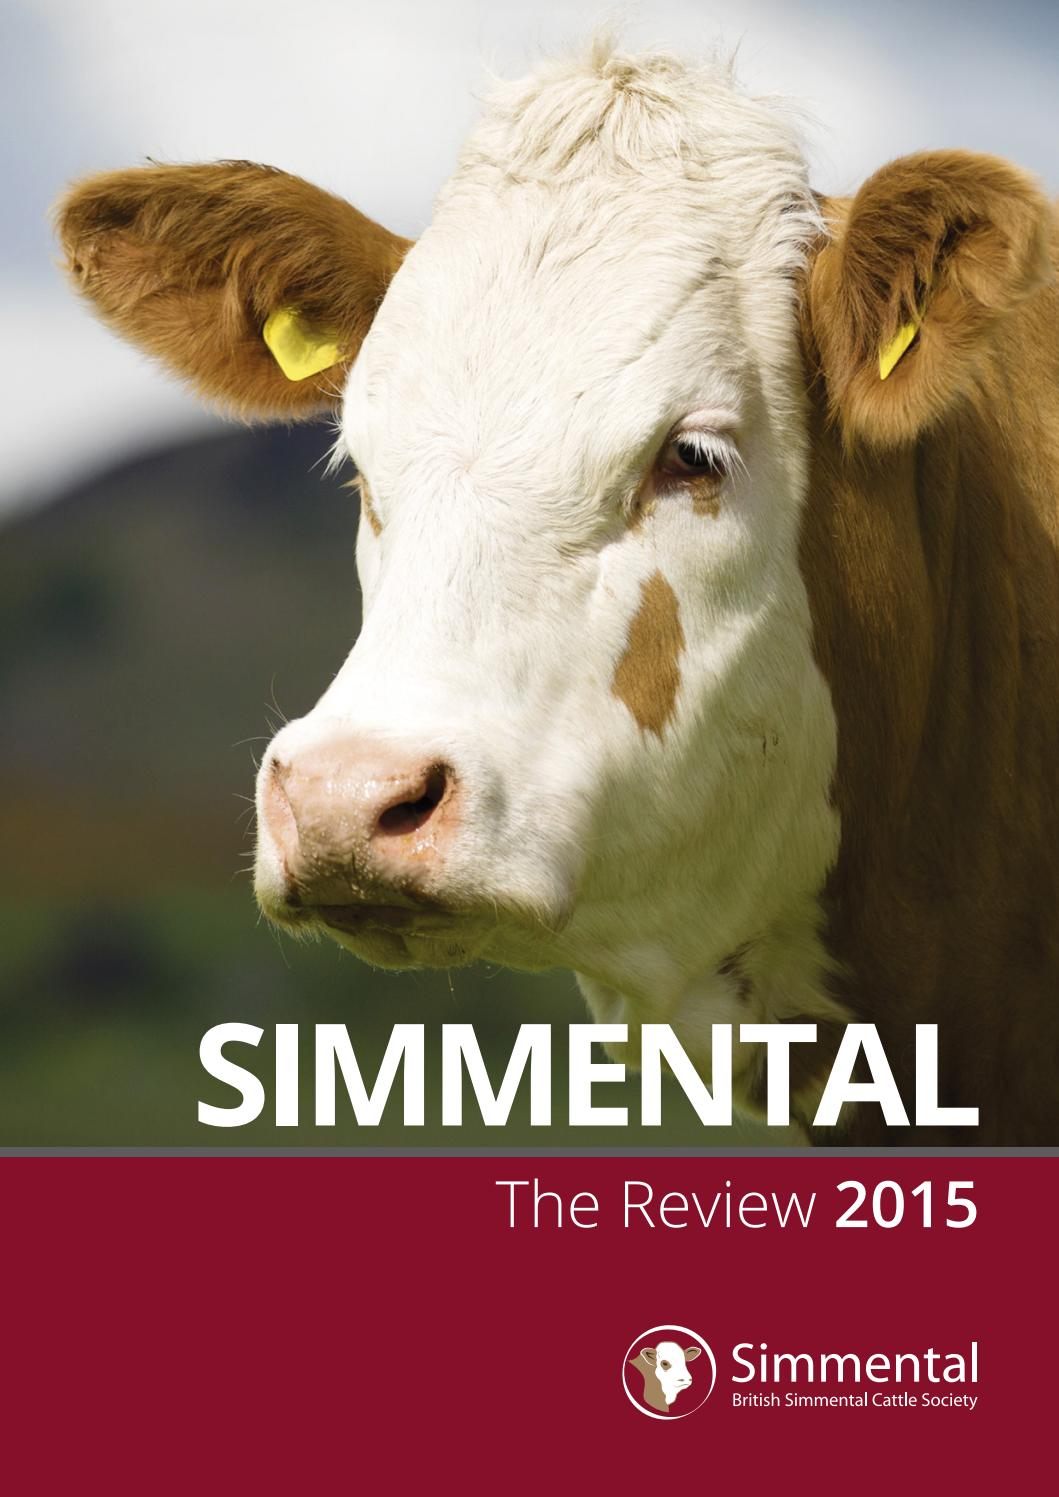 f99394dff0 Simmental Annual Review 2015 by British Simmental Cattle Society - issuu